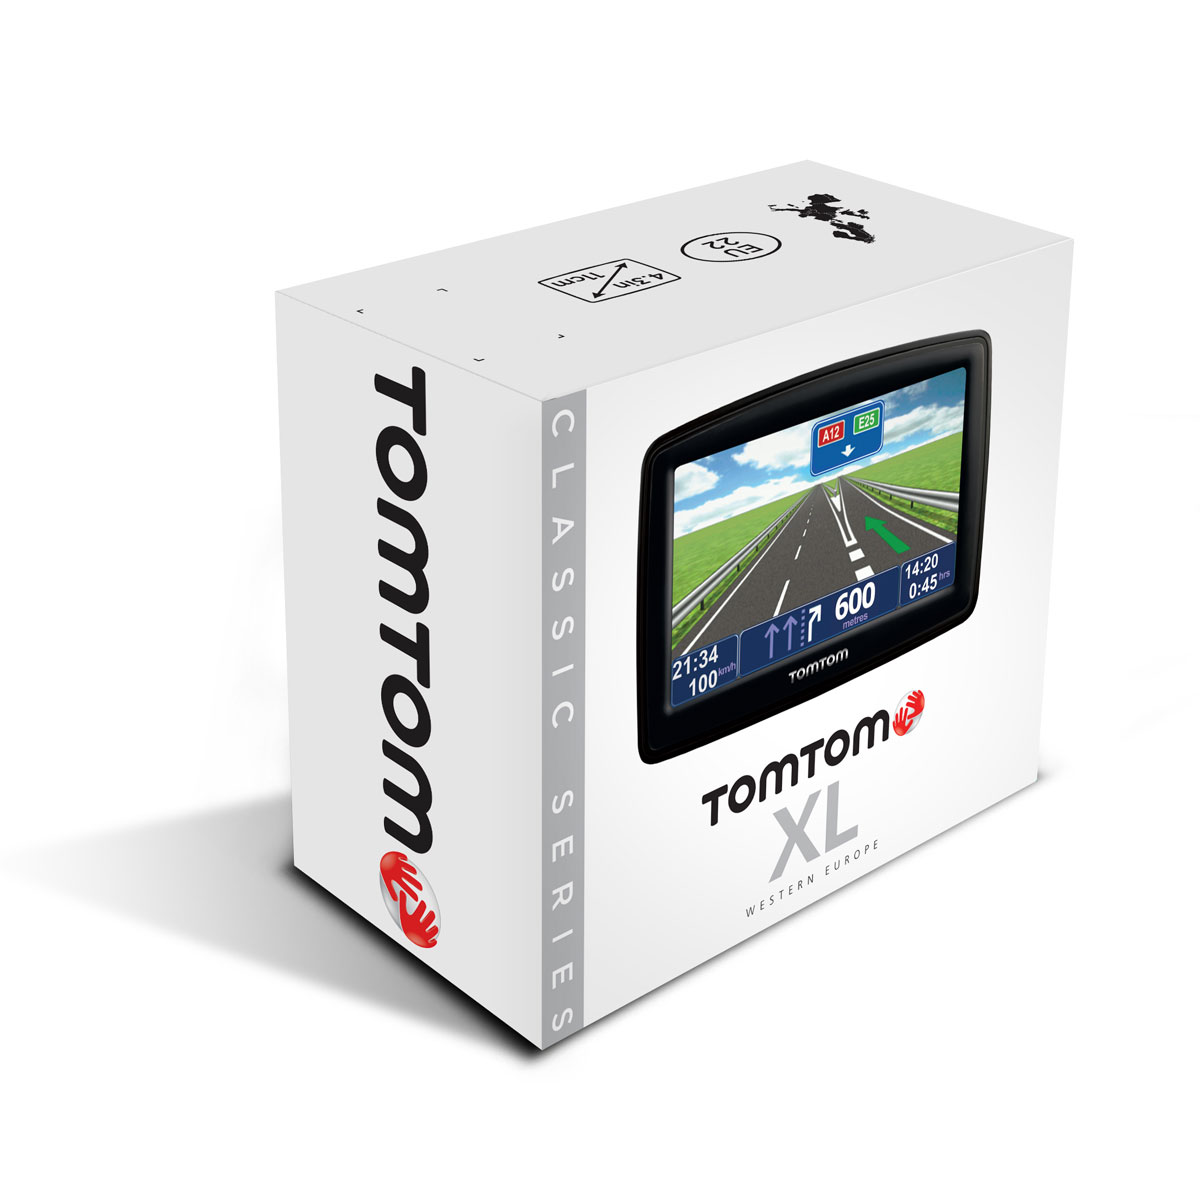 tomtom xl europe classic series 23 pays gps tomtom sur ldlc. Black Bedroom Furniture Sets. Home Design Ideas